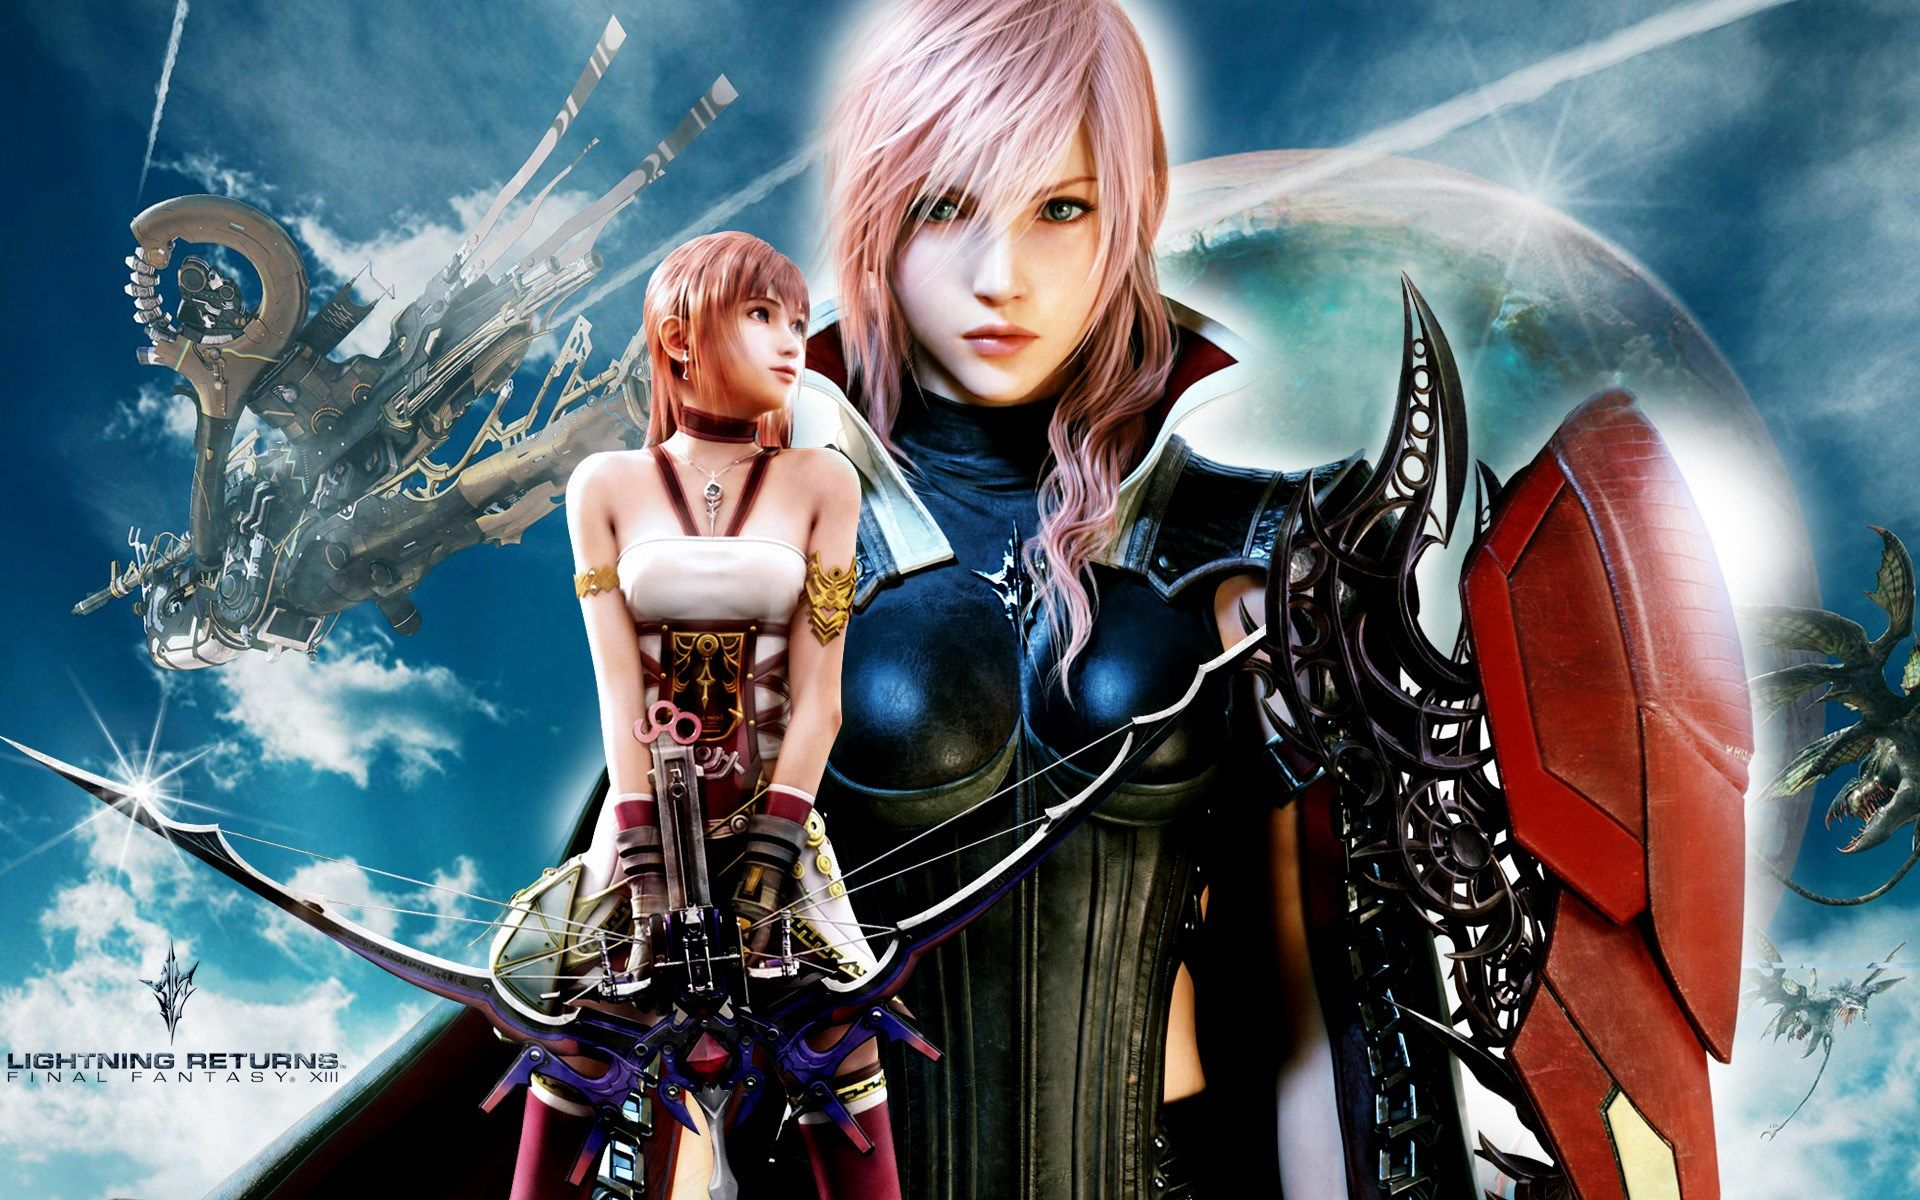 1305352 hdq images final fantasy xiii lightning returns wallpaper 1305352 hdq images final fantasy xiii lightning returns wallpaper voltagebd Images